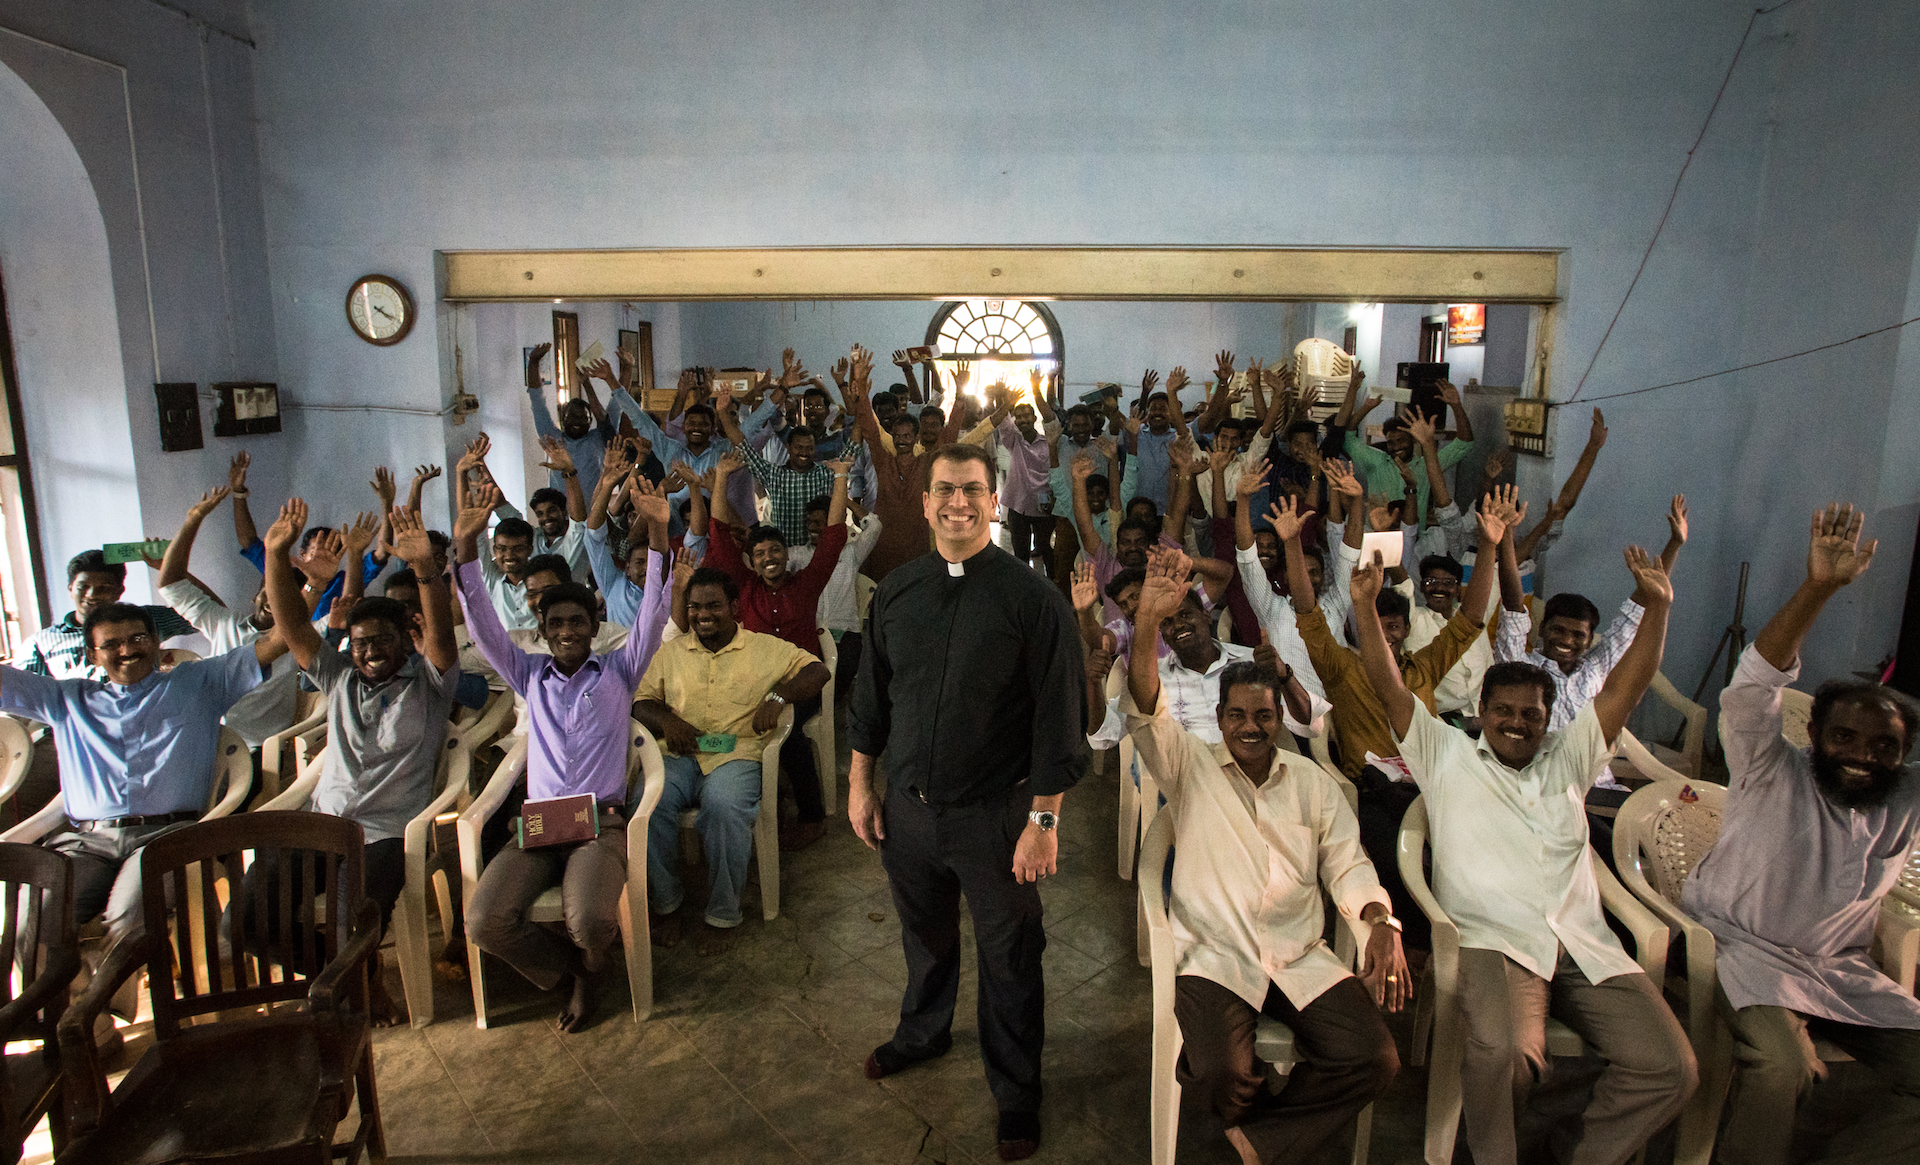 Rev. Ross Johnson, Director of LCMS Disaster Response and the faculty, staff, and students of Concordia Theological Seminary, Nagercoil. Johanna Heidorn, photographer